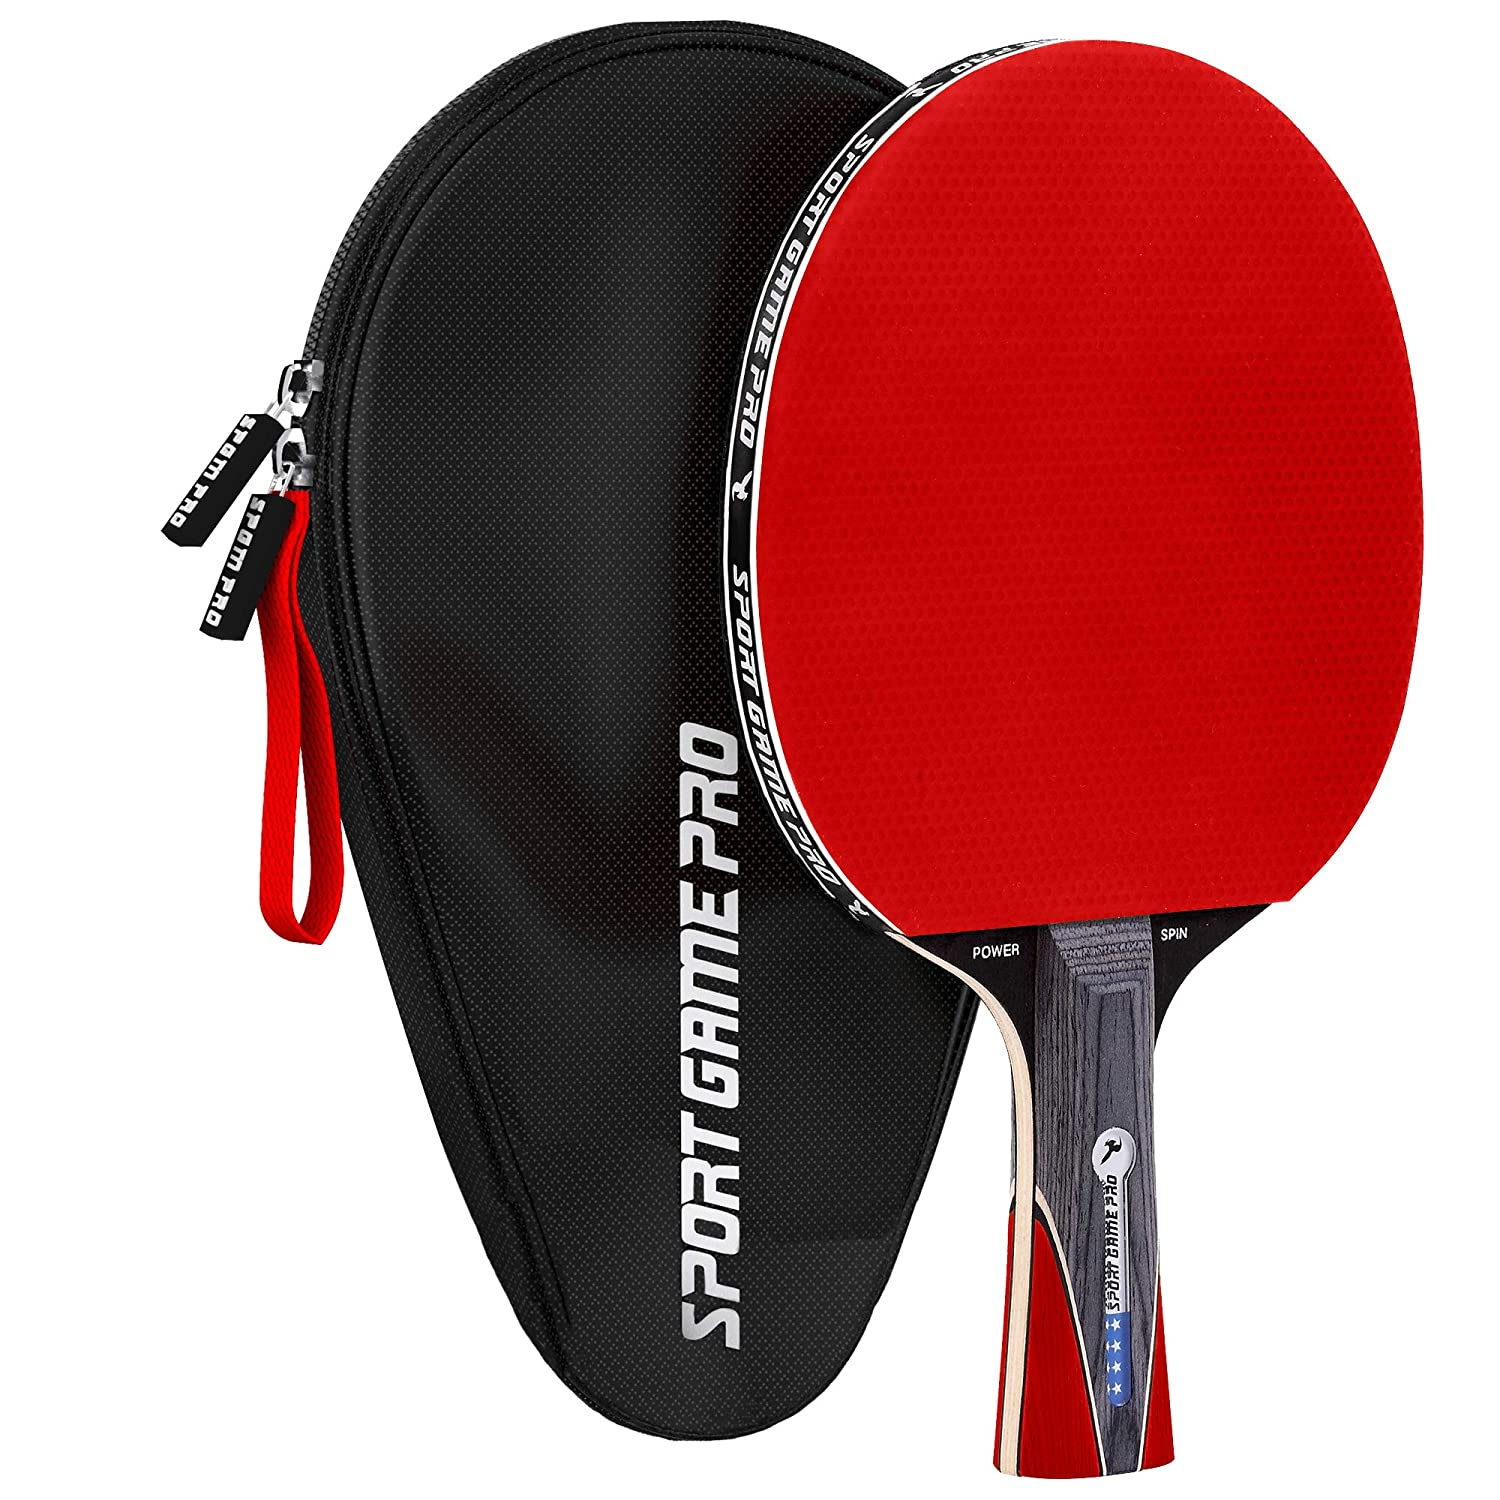 Ping Pong Paddle JT-700 with Killer Spin – Most Versatile Ping-Pong Paddle for Spin